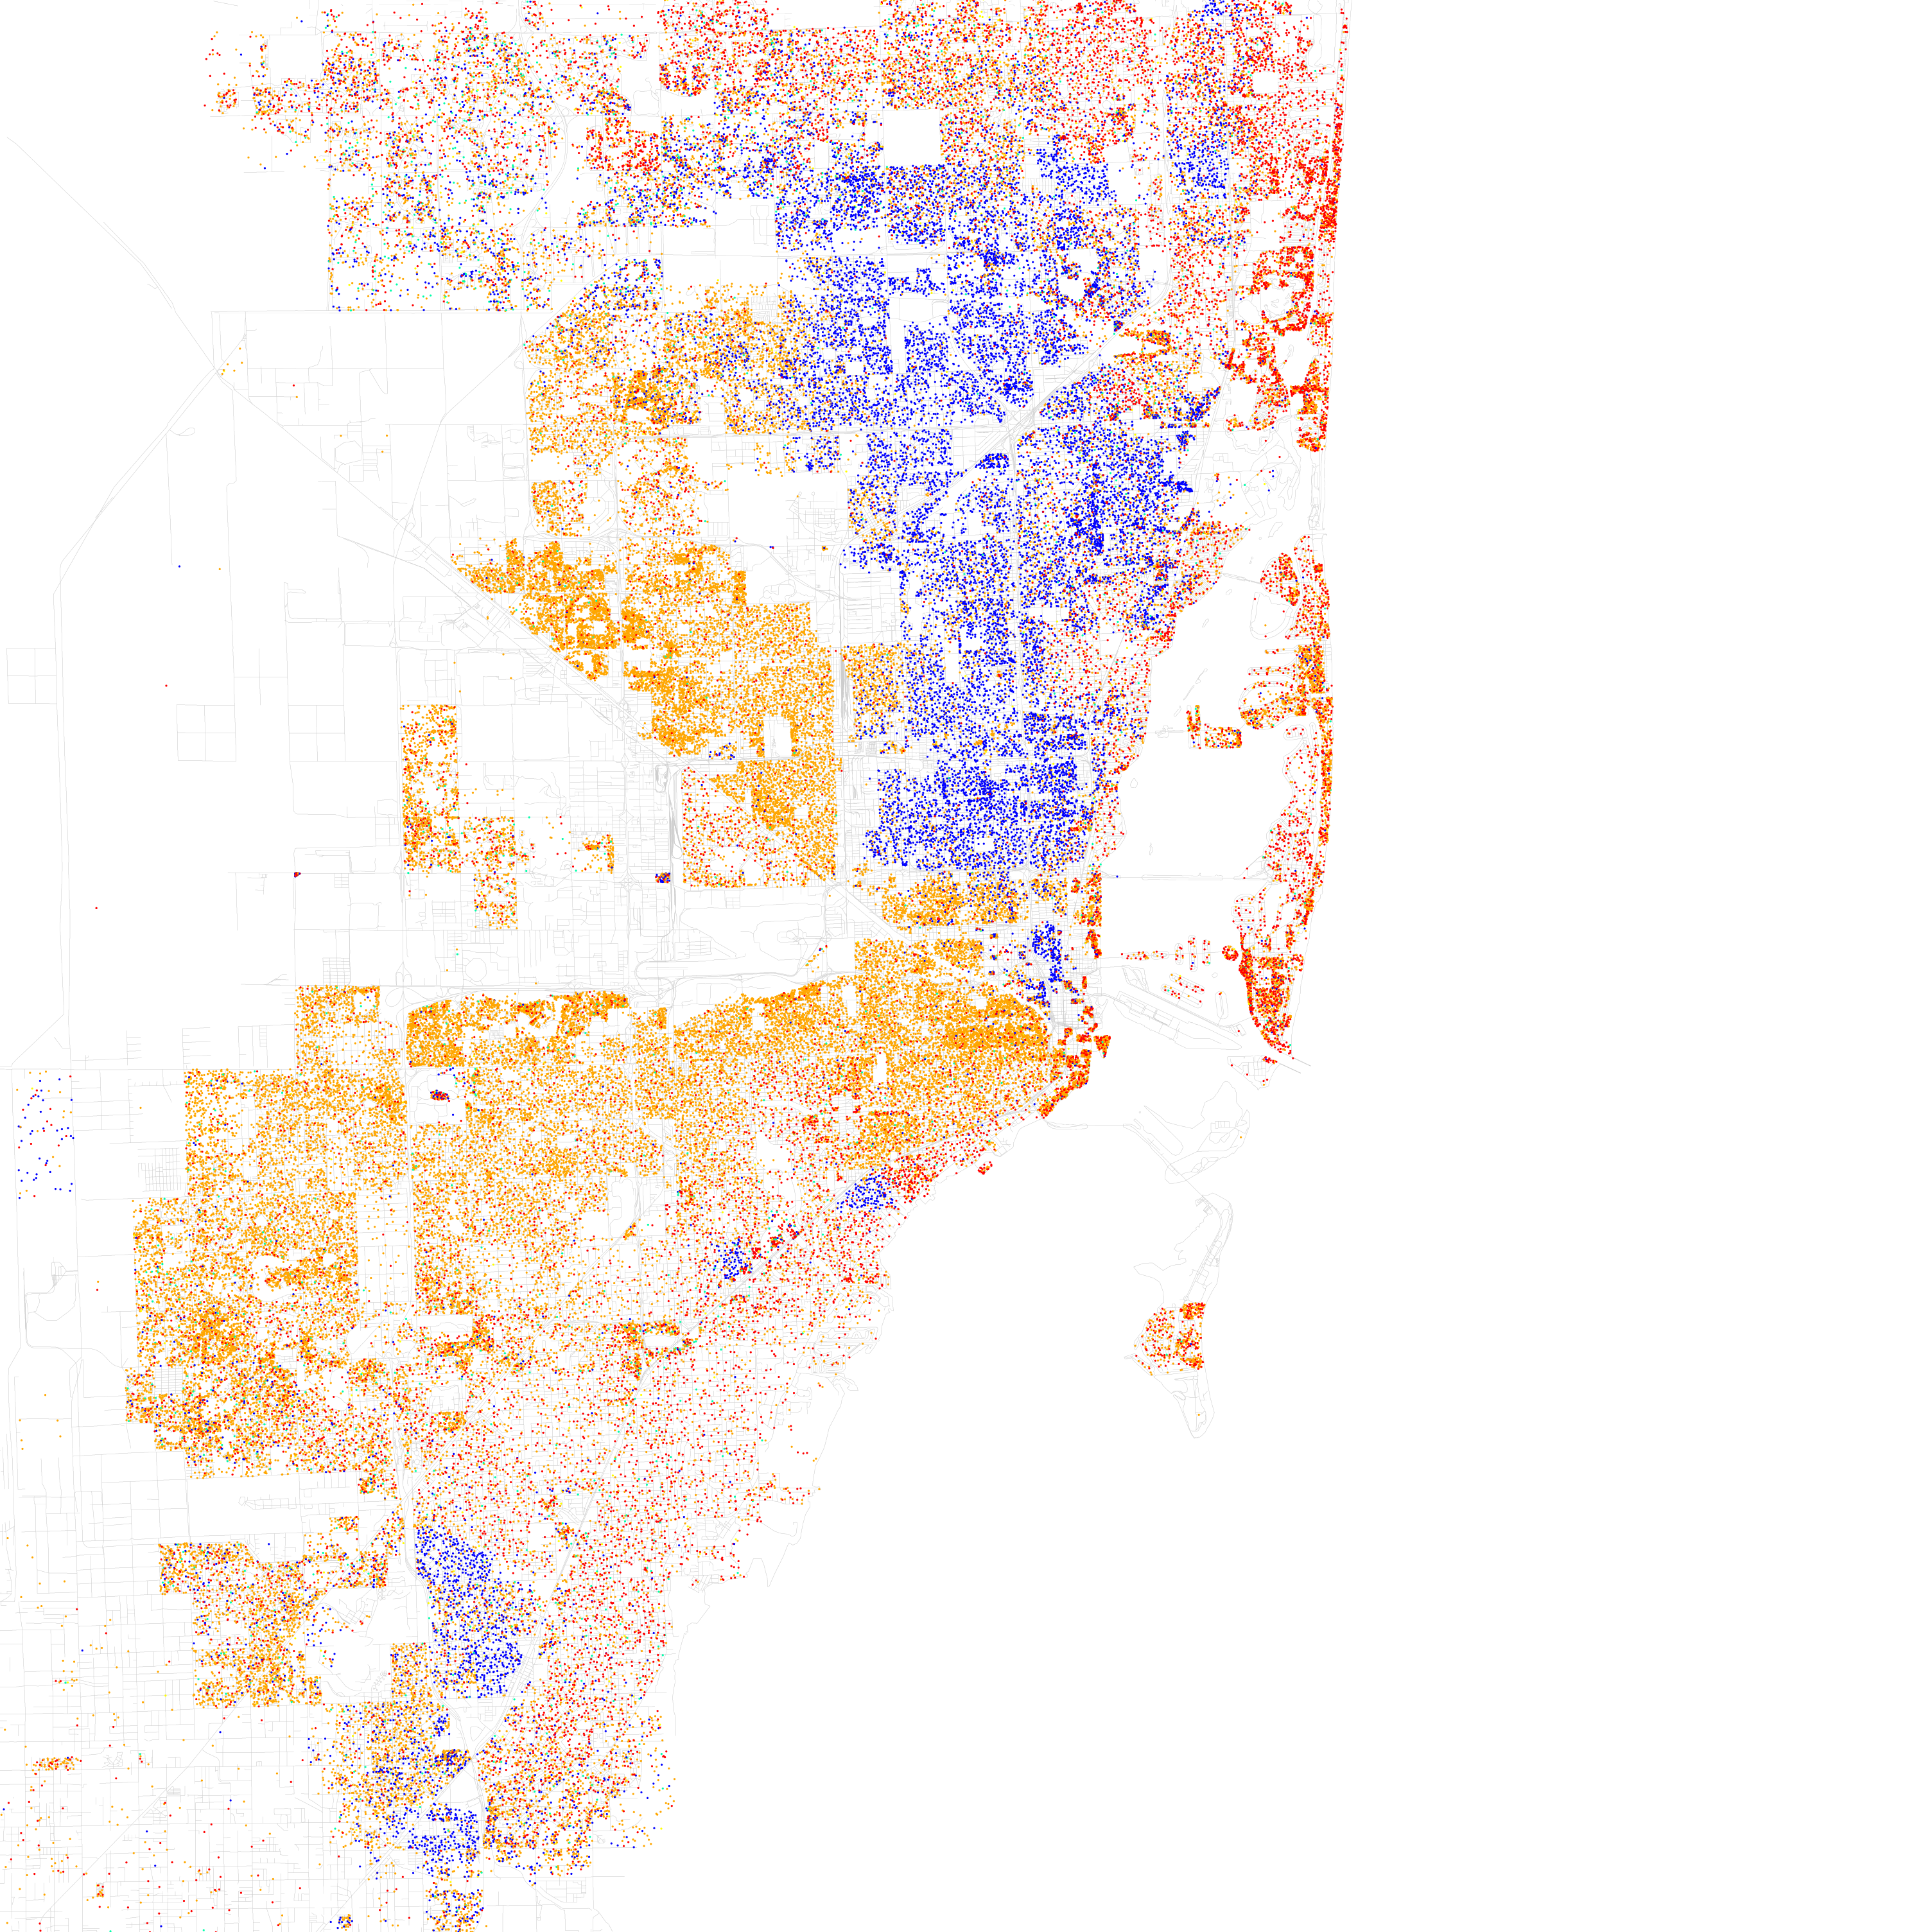 racial map miami dade with Miami on 2010 05 09 archive together with The Prosecutor Who Couldnt Win The Case Against George Zimmerman likewise Miami as well Check Out These Fascinating Maps Of Miamis Racial Mixup furthermore Chicago  munity areas.